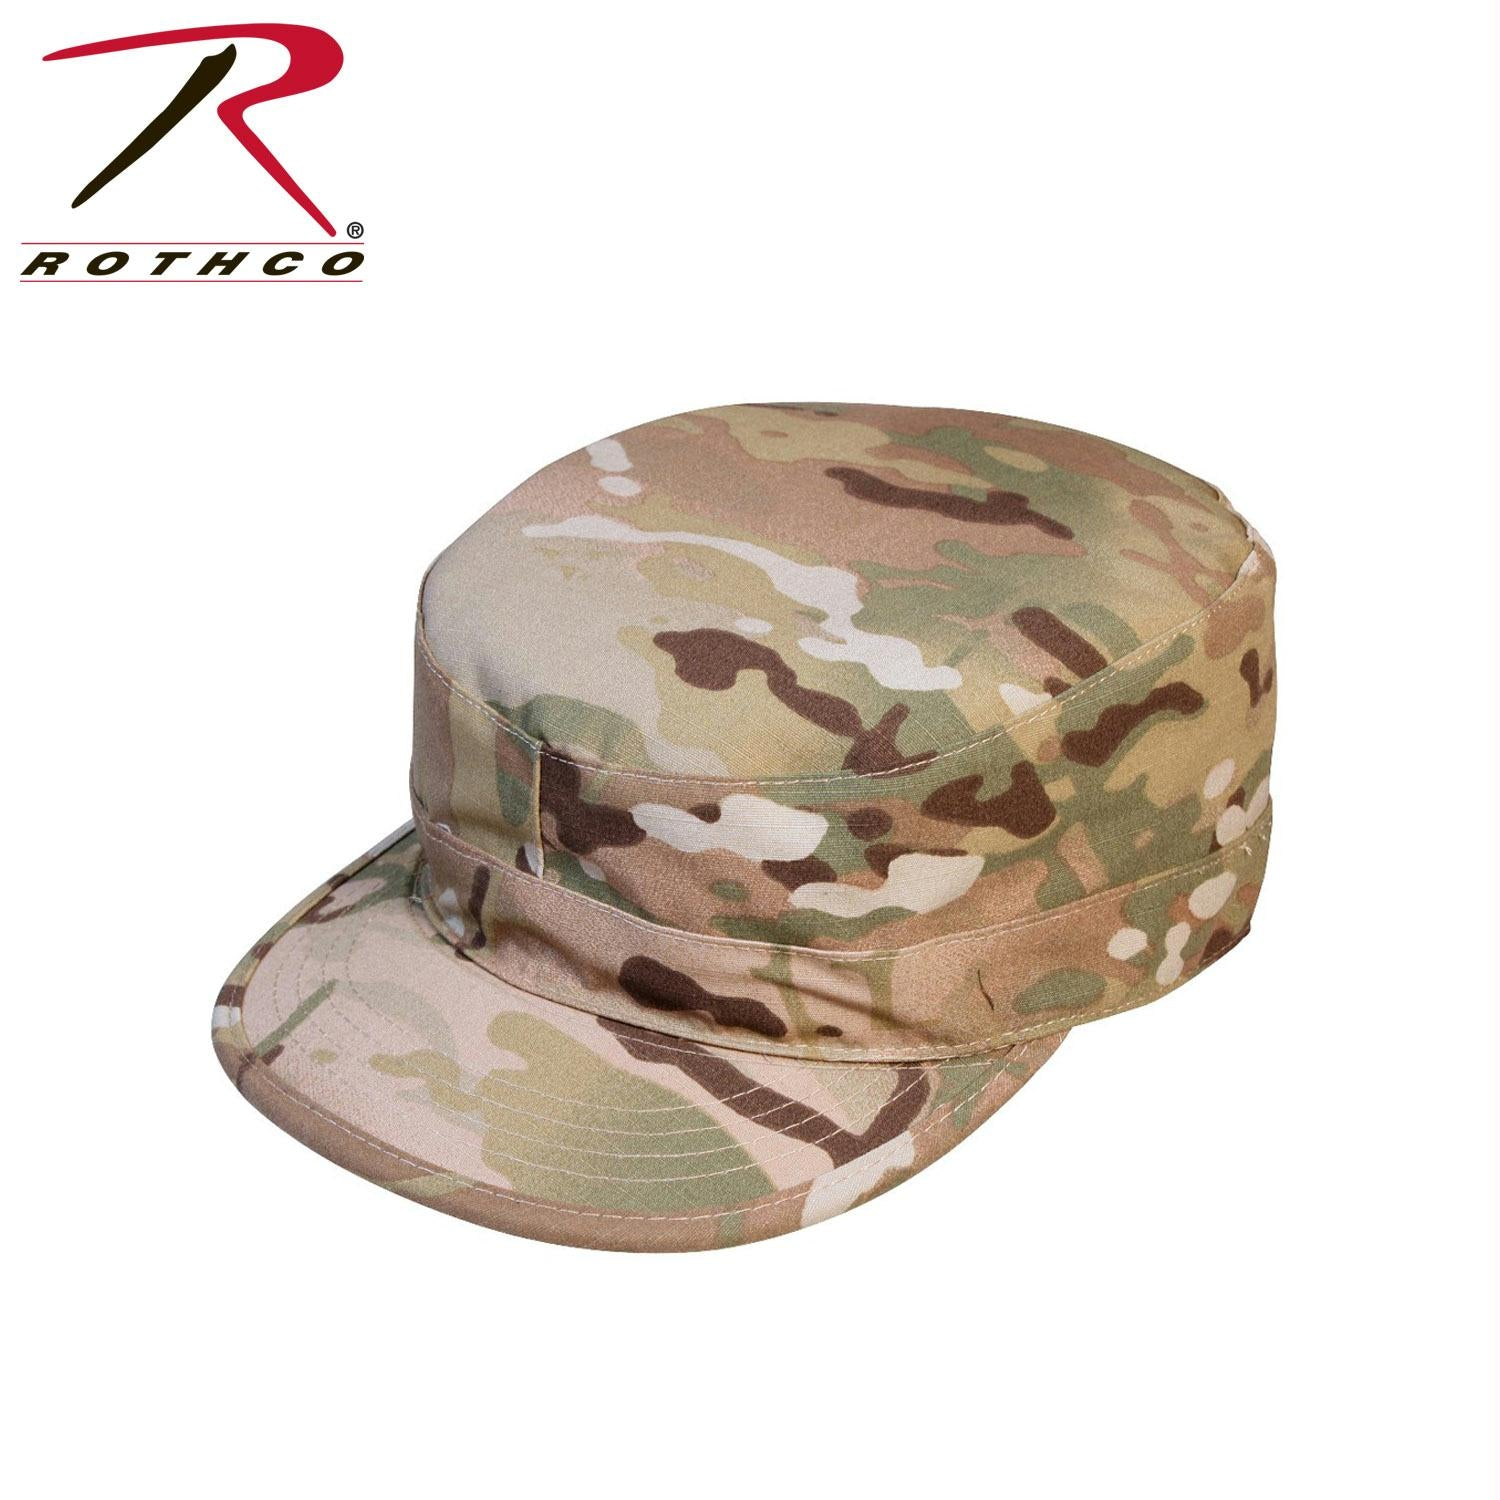 Rothco Gov't Spec 2 Ply Multicam Army Ranger Fatigue Cap - 7 1/4